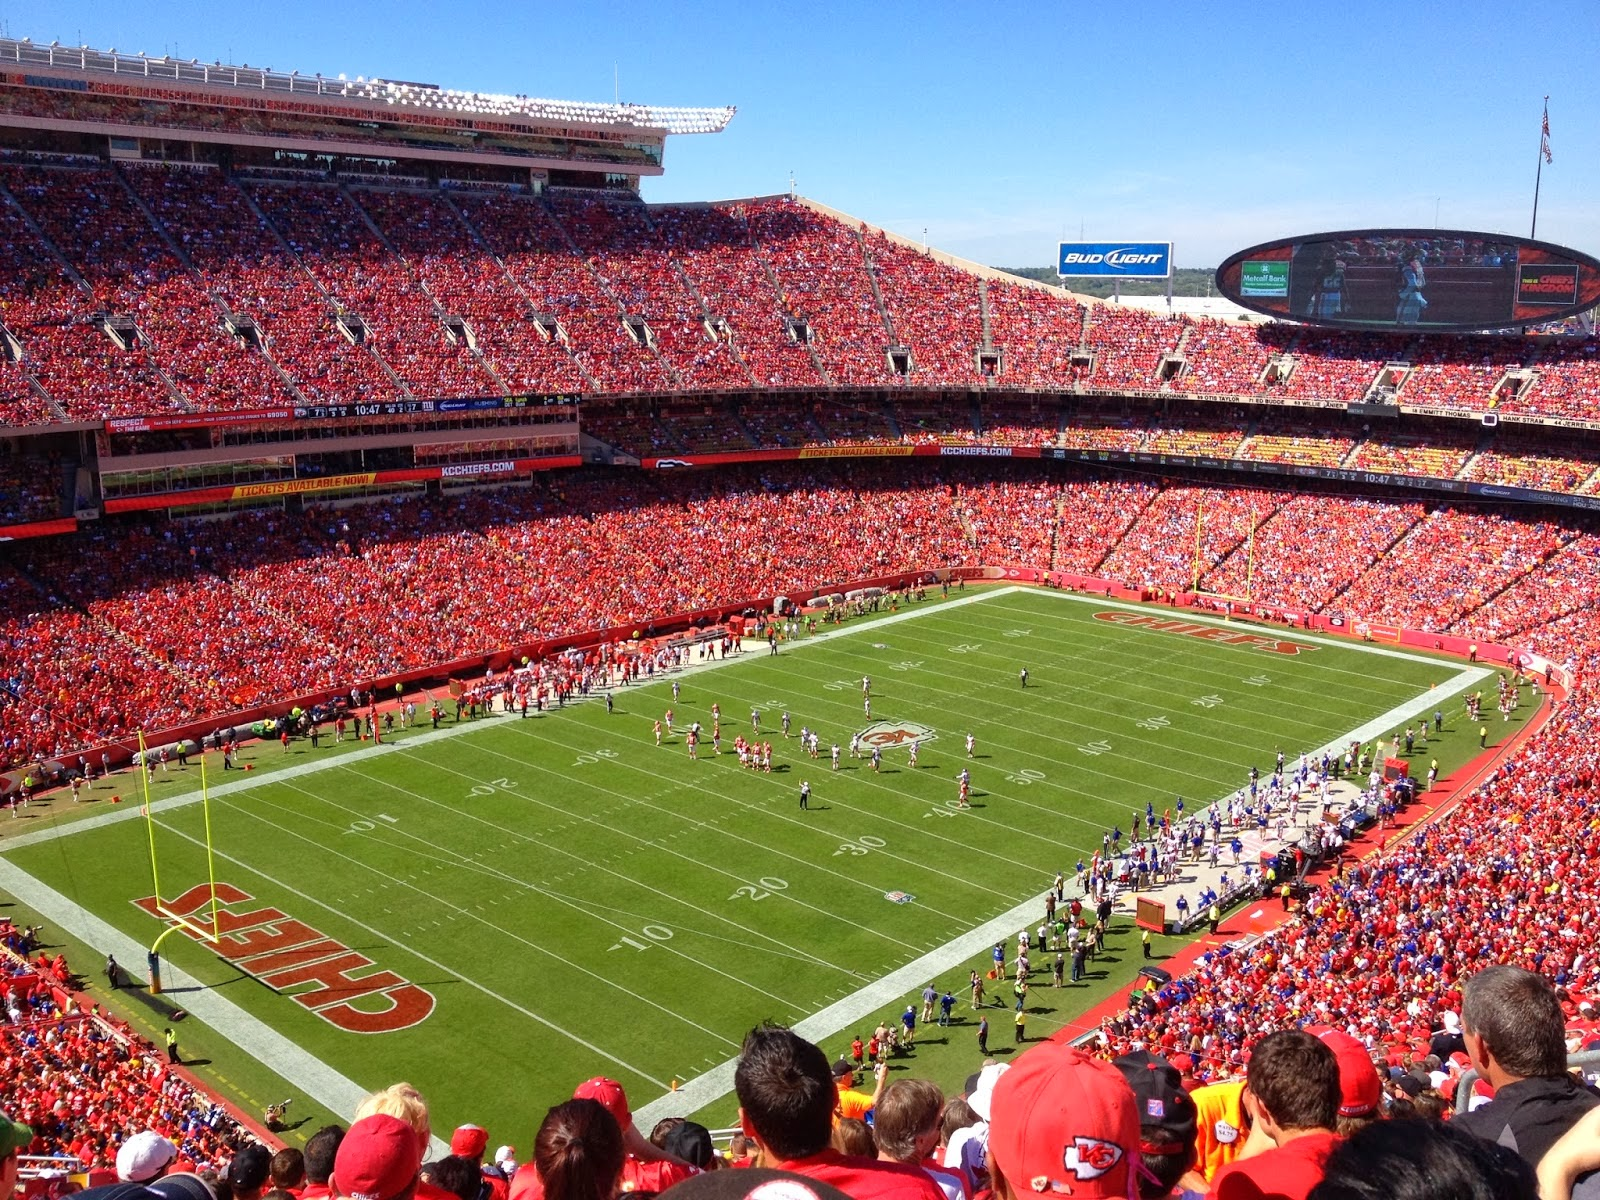 Kansas City Chiefs Luxury Suite Rentals For Sale, Arrowhead Stadium